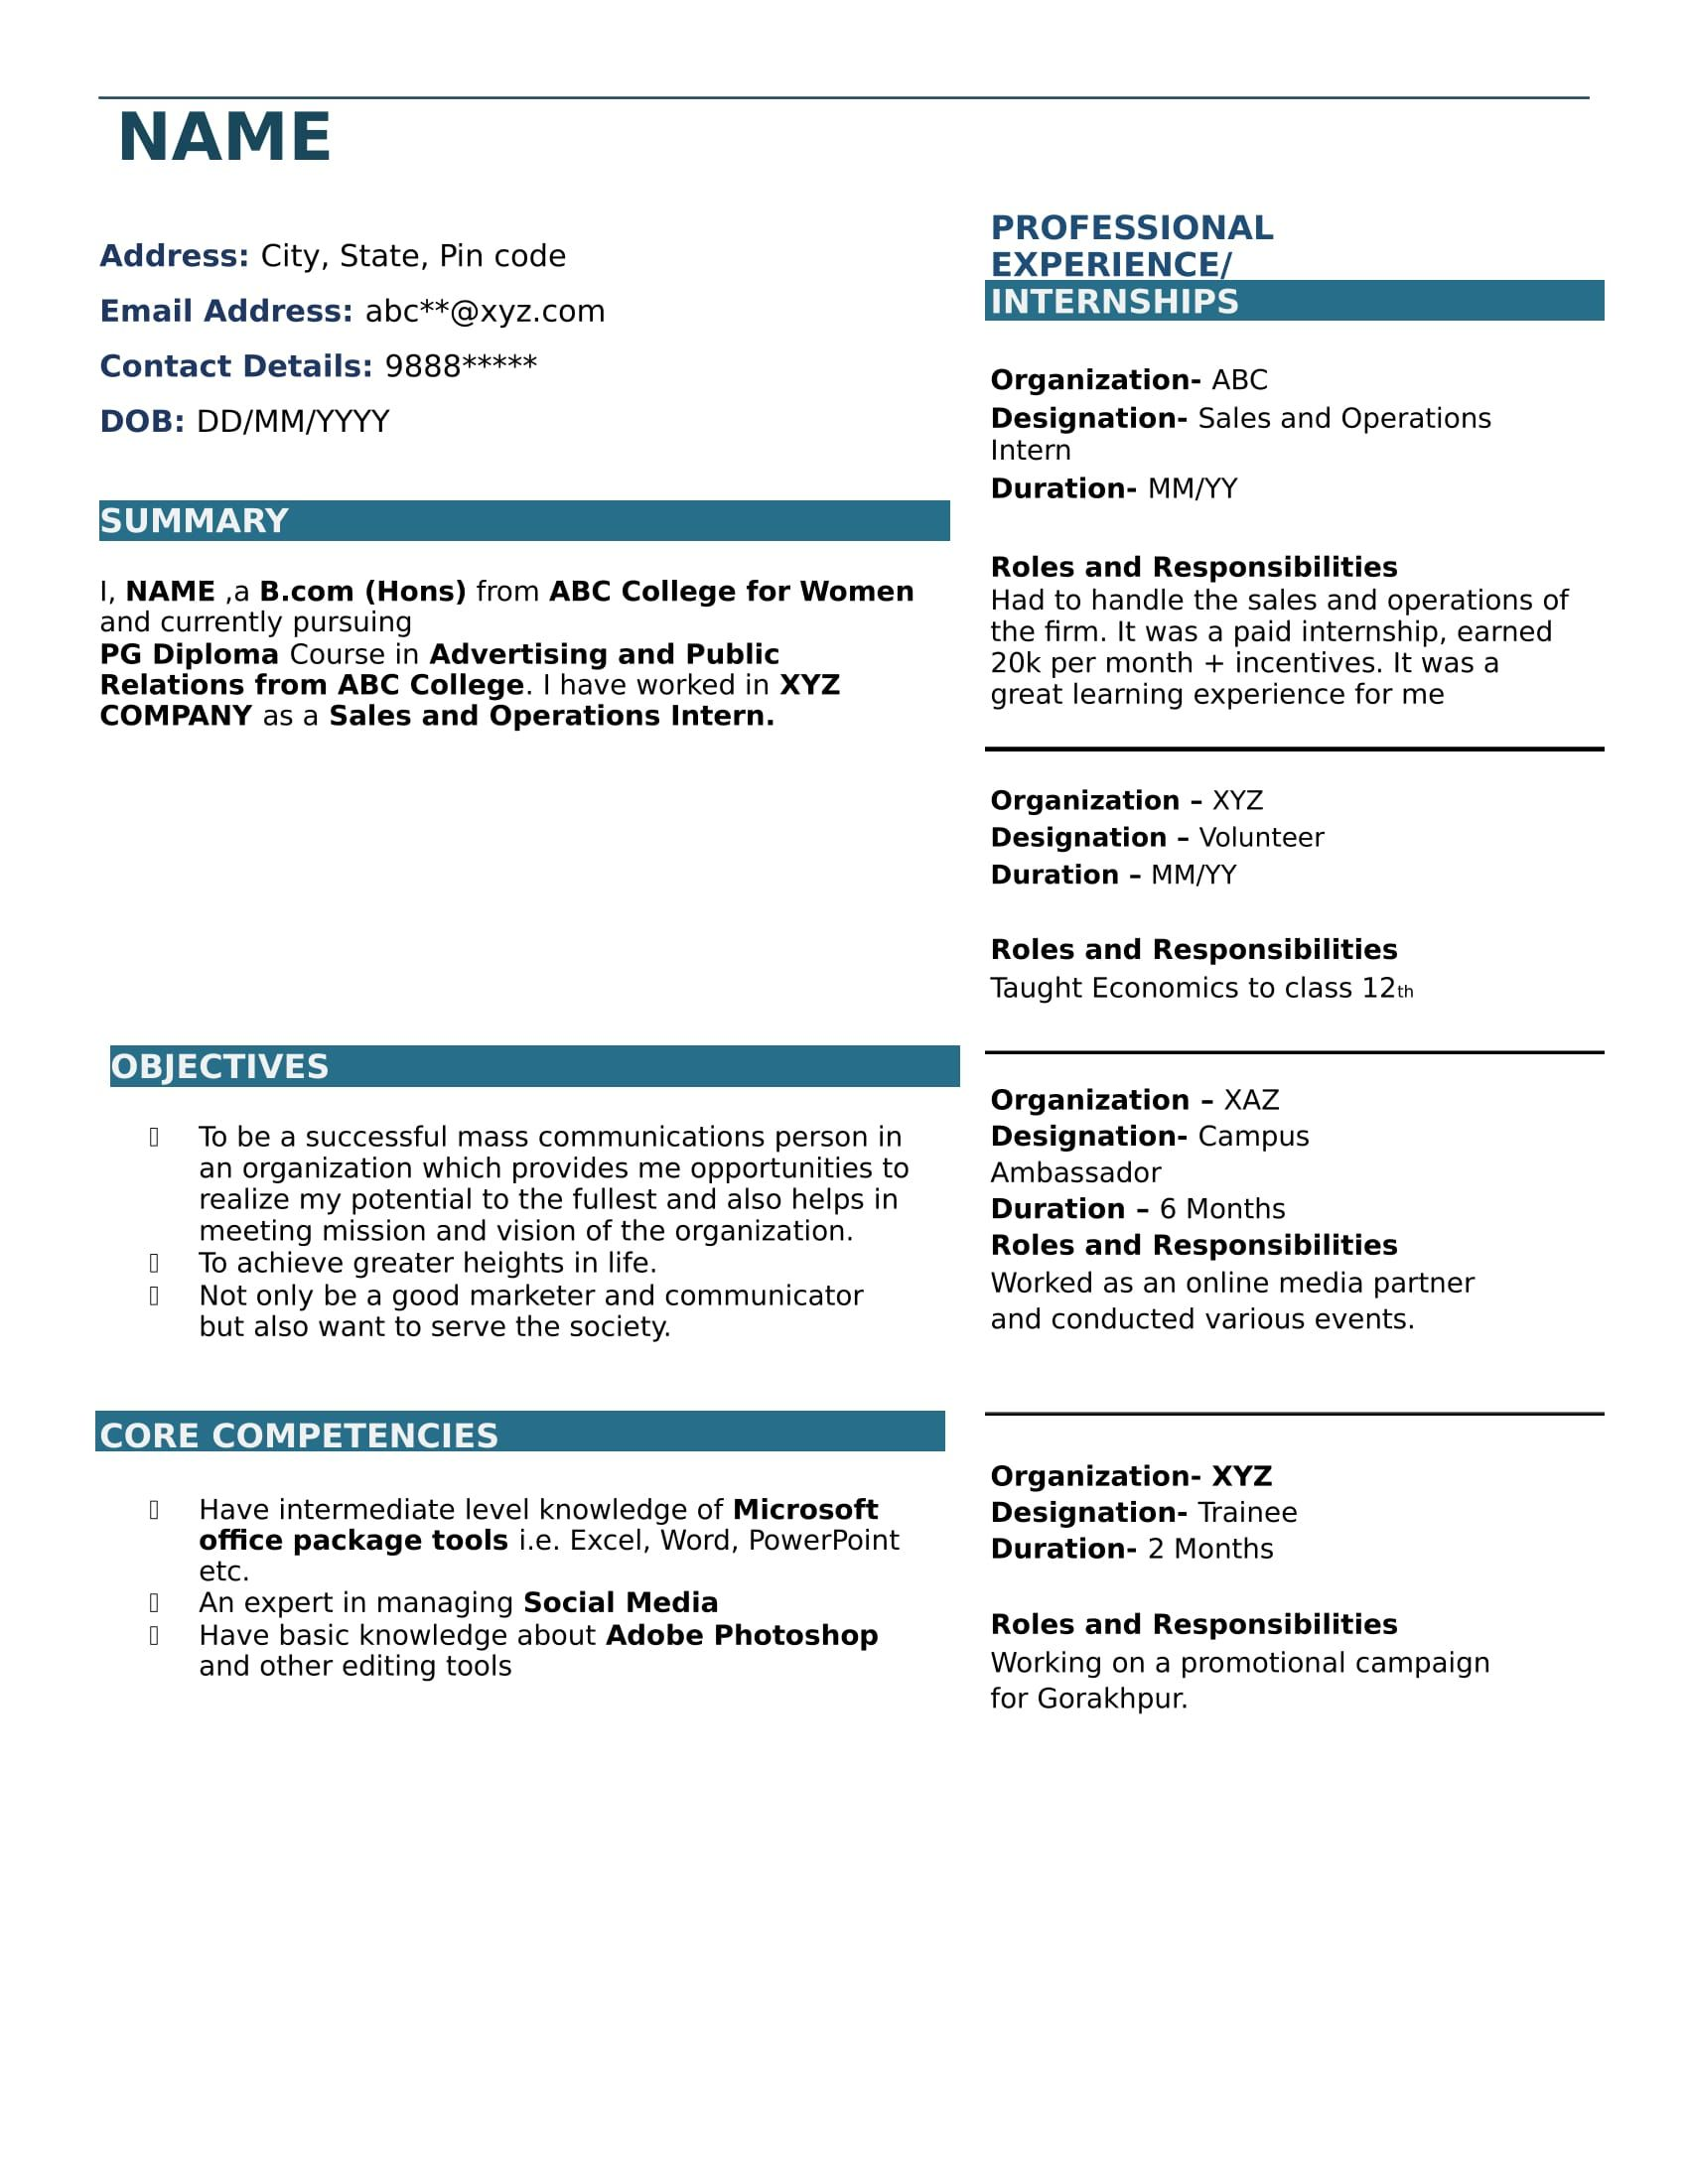 Resume Templates For Freshers Download Free Amazing